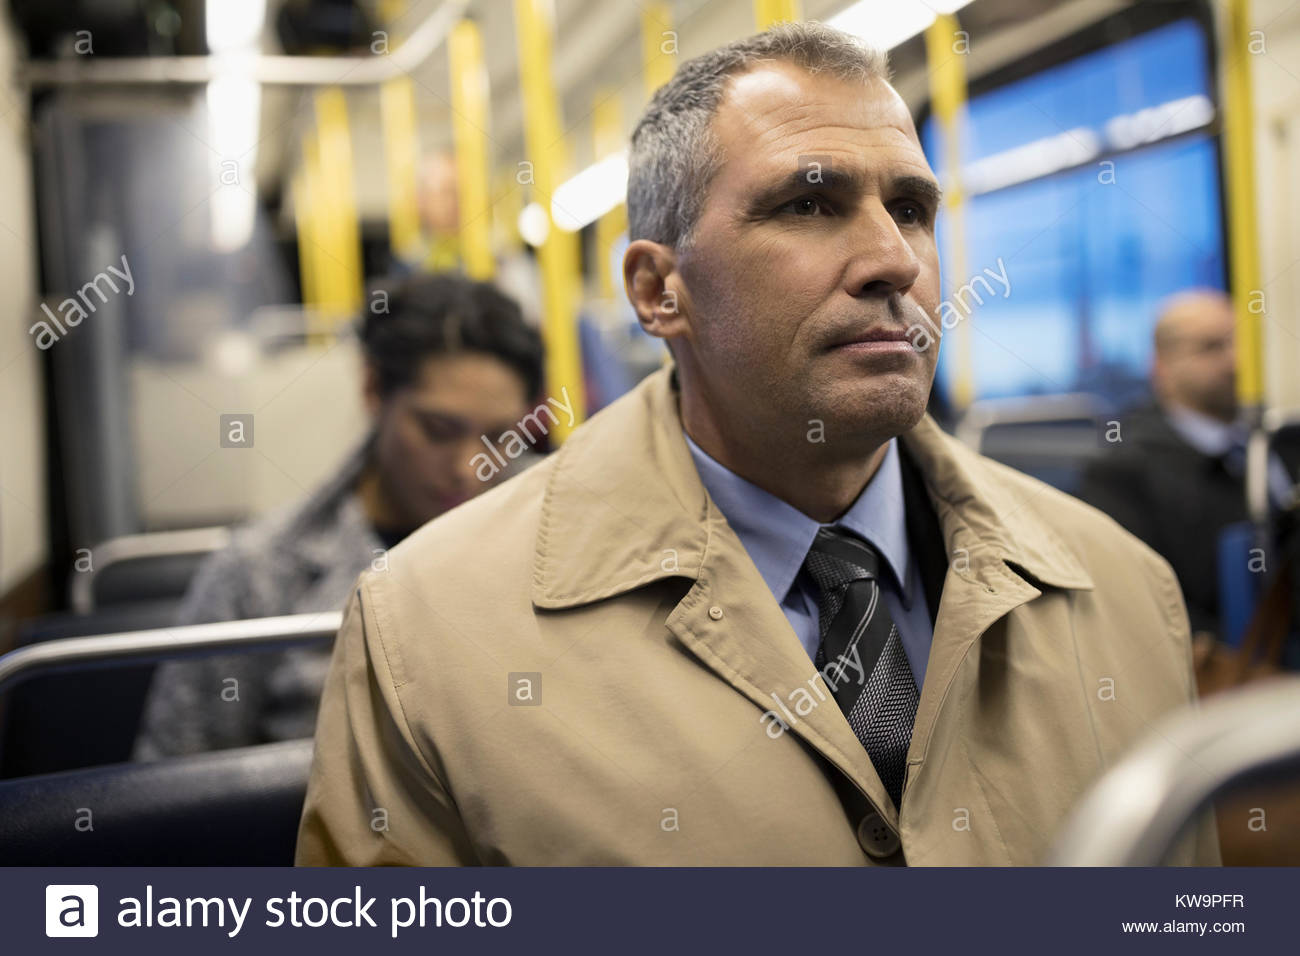 Serious mature businessman commuter riding bus - Stock Image